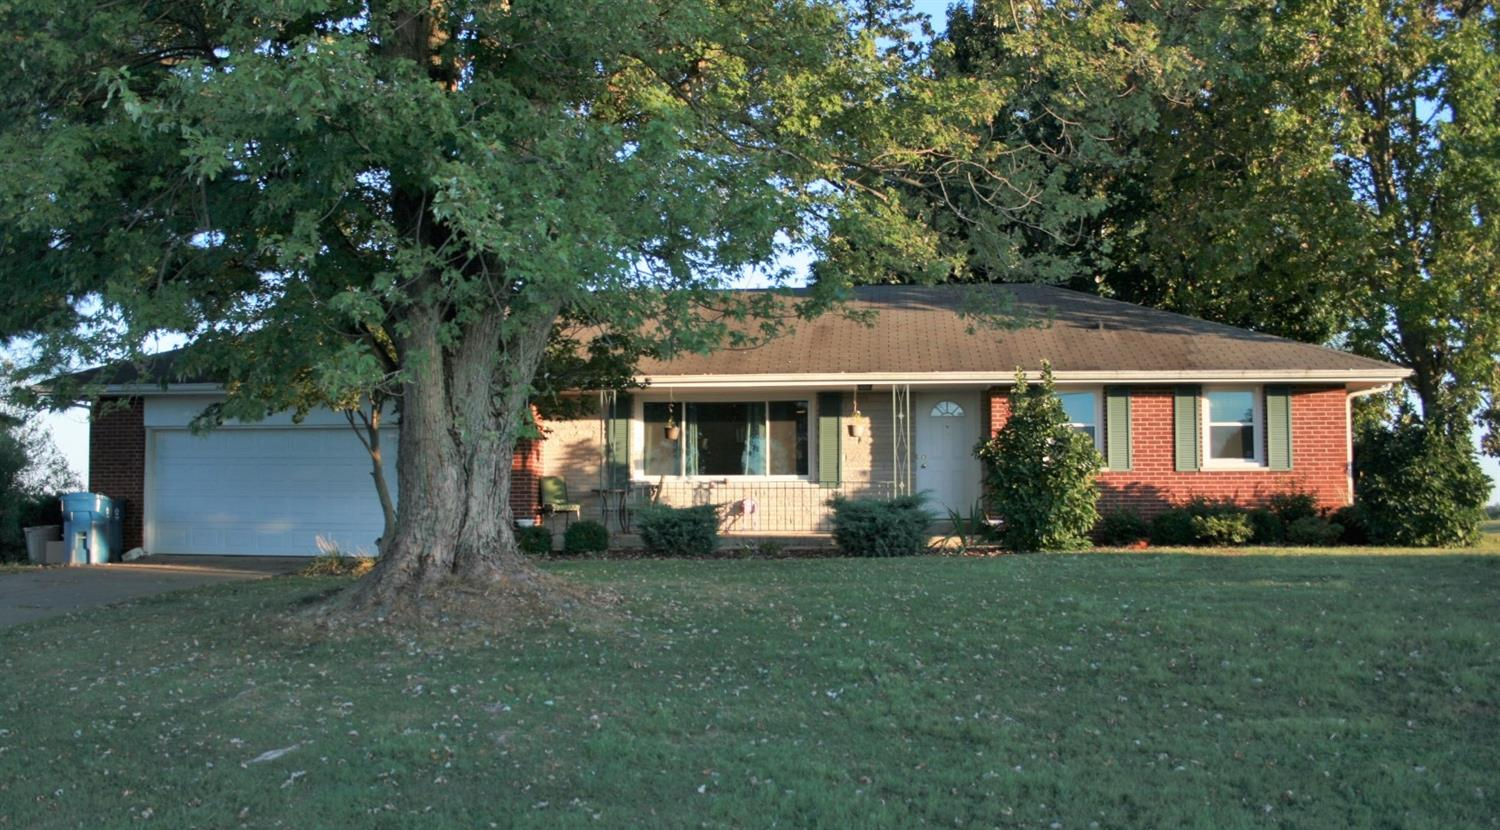 Photo 1 for 2375 Gardnersville Rd Crittenden, KY 41030